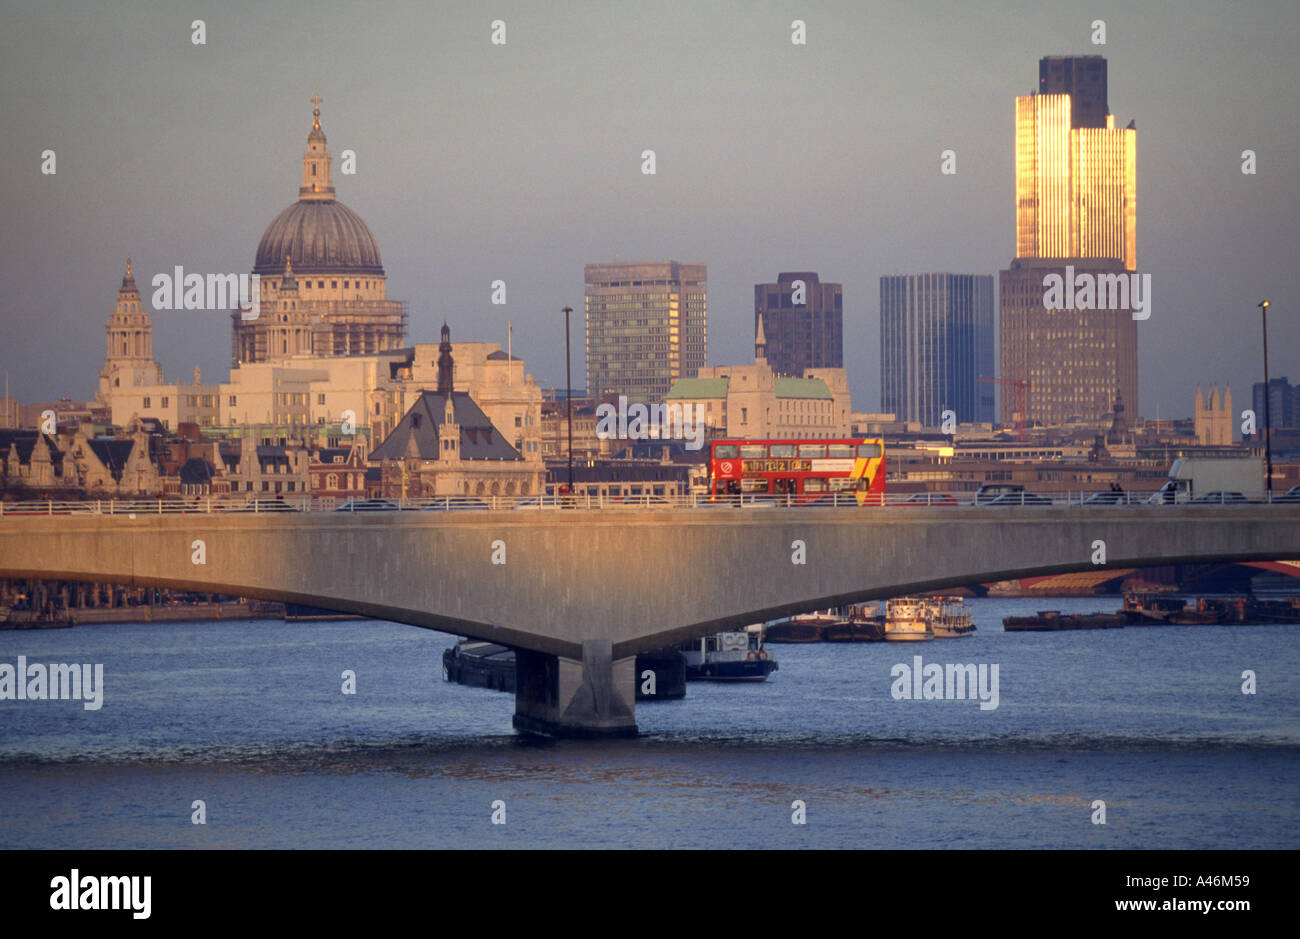 A view of Waterloo Bridge crossing the River Thames in London, showing St Pauls Cathedral and the Nat West Tower Stock Photo